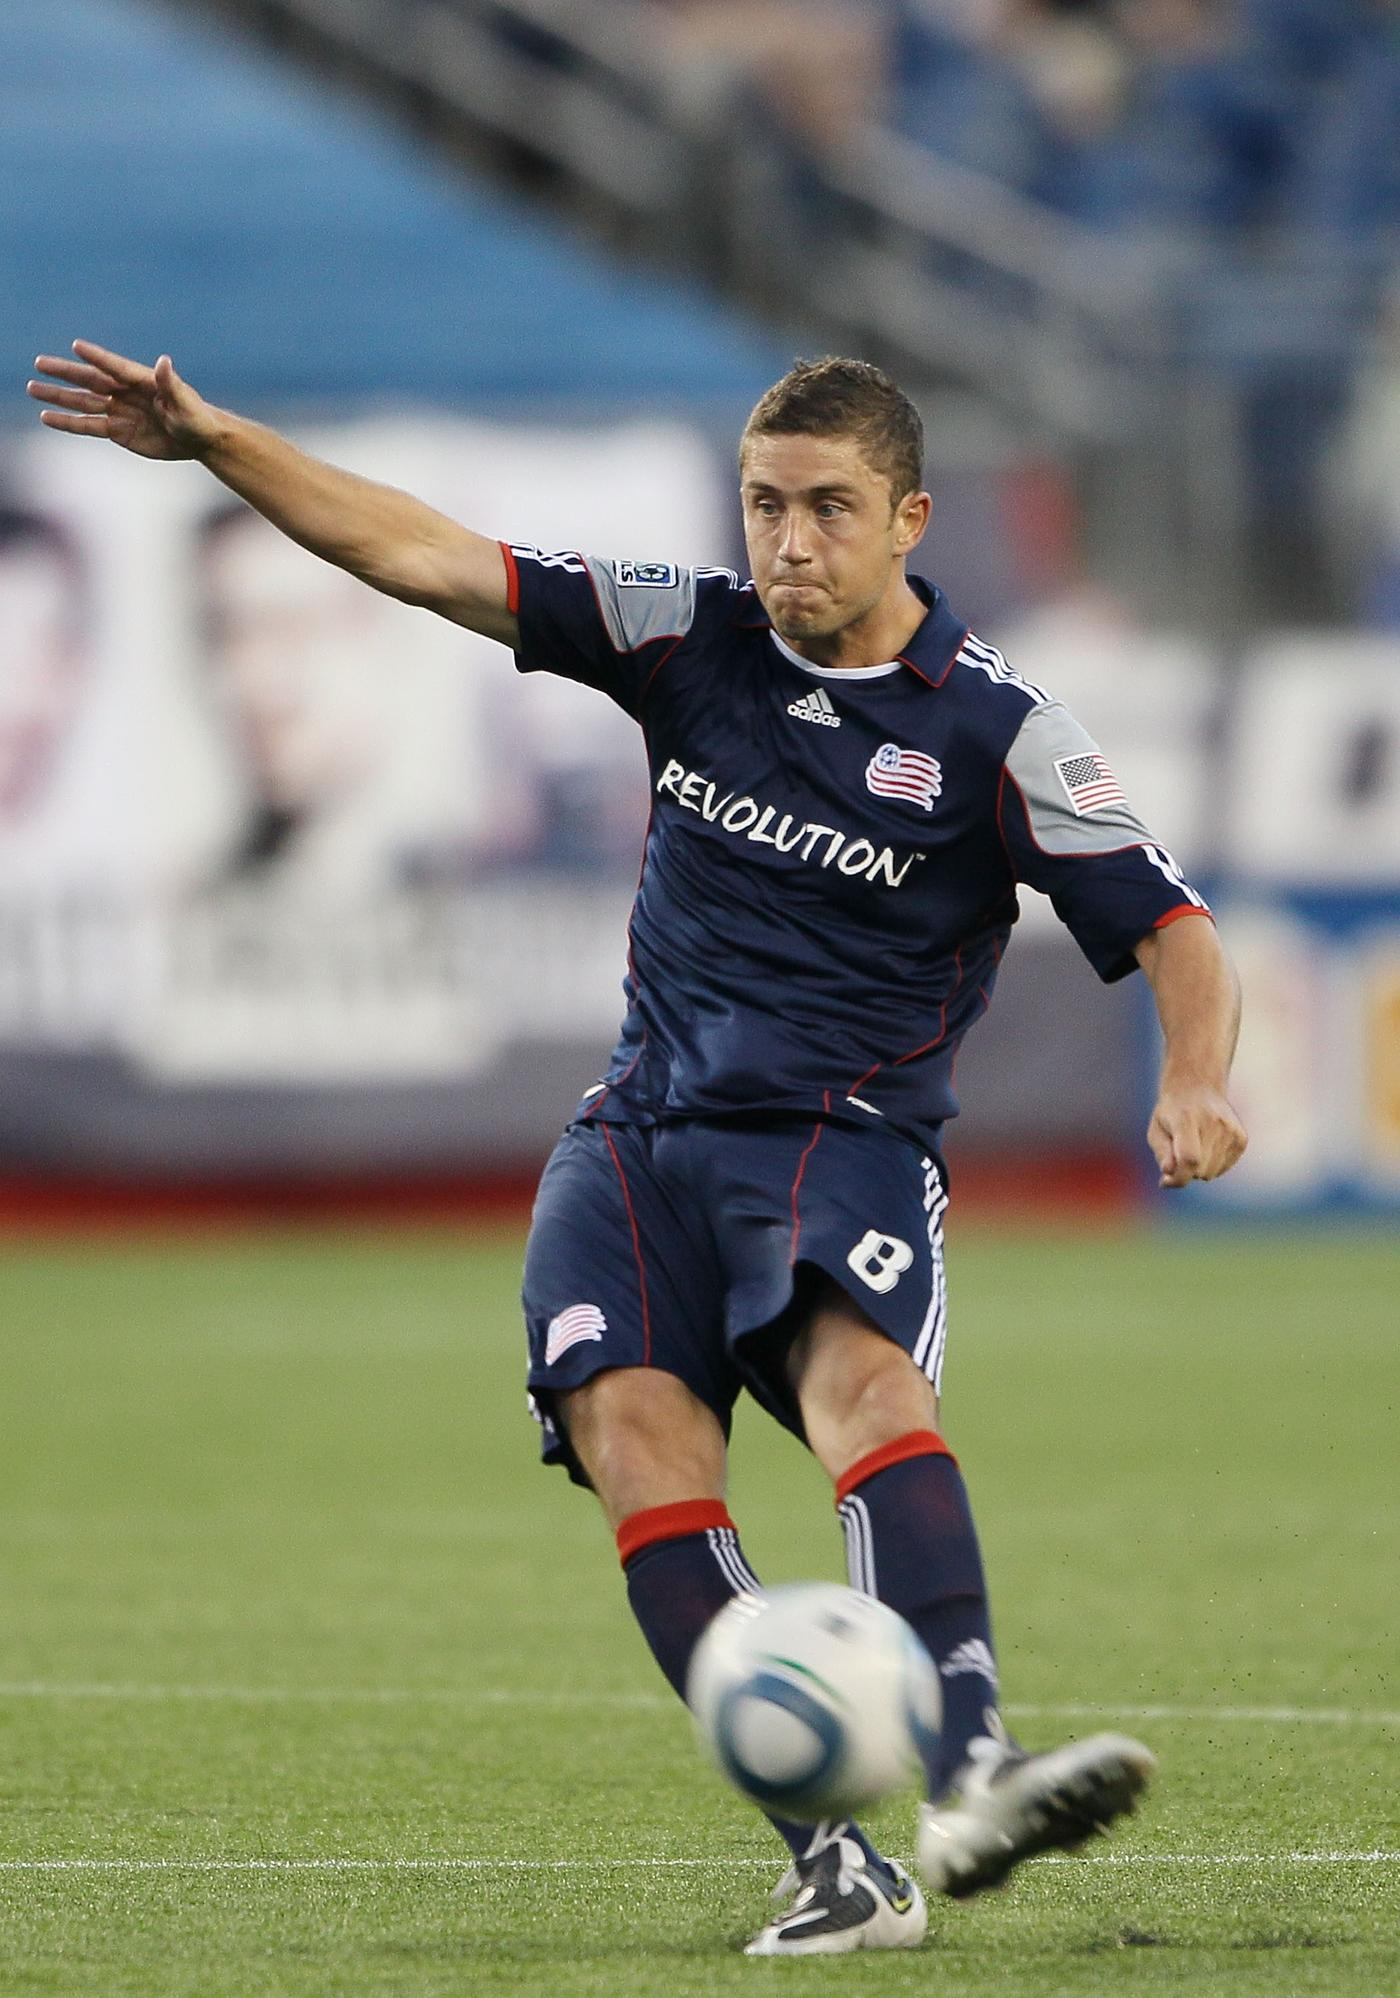 Chris Tierney and the Revs are competing against the other 15 MLS teams for a $50,000 grant from the Pepsi Refresh Project